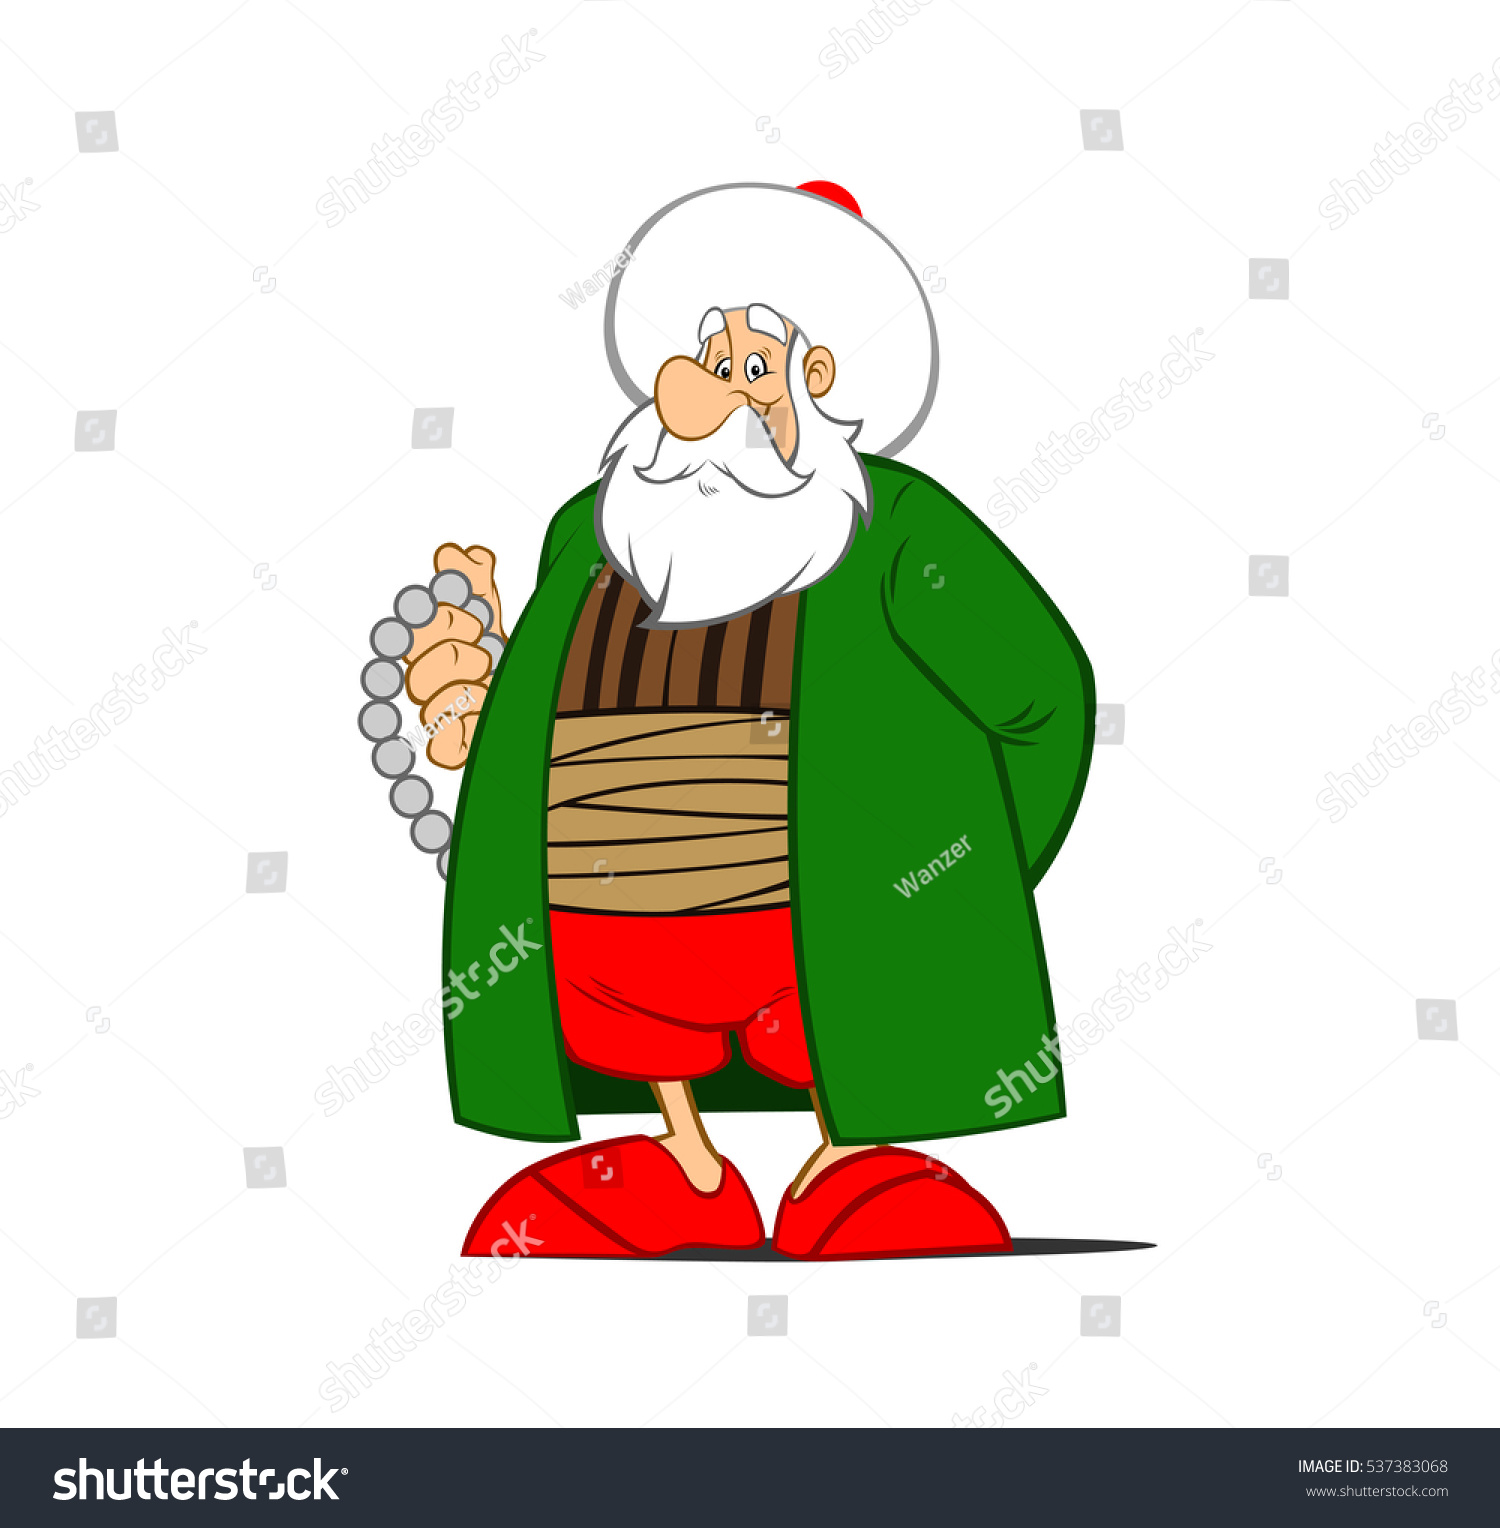 Animated Character Design In Illustrator : Nasreddin hodja illustration cartoon character design